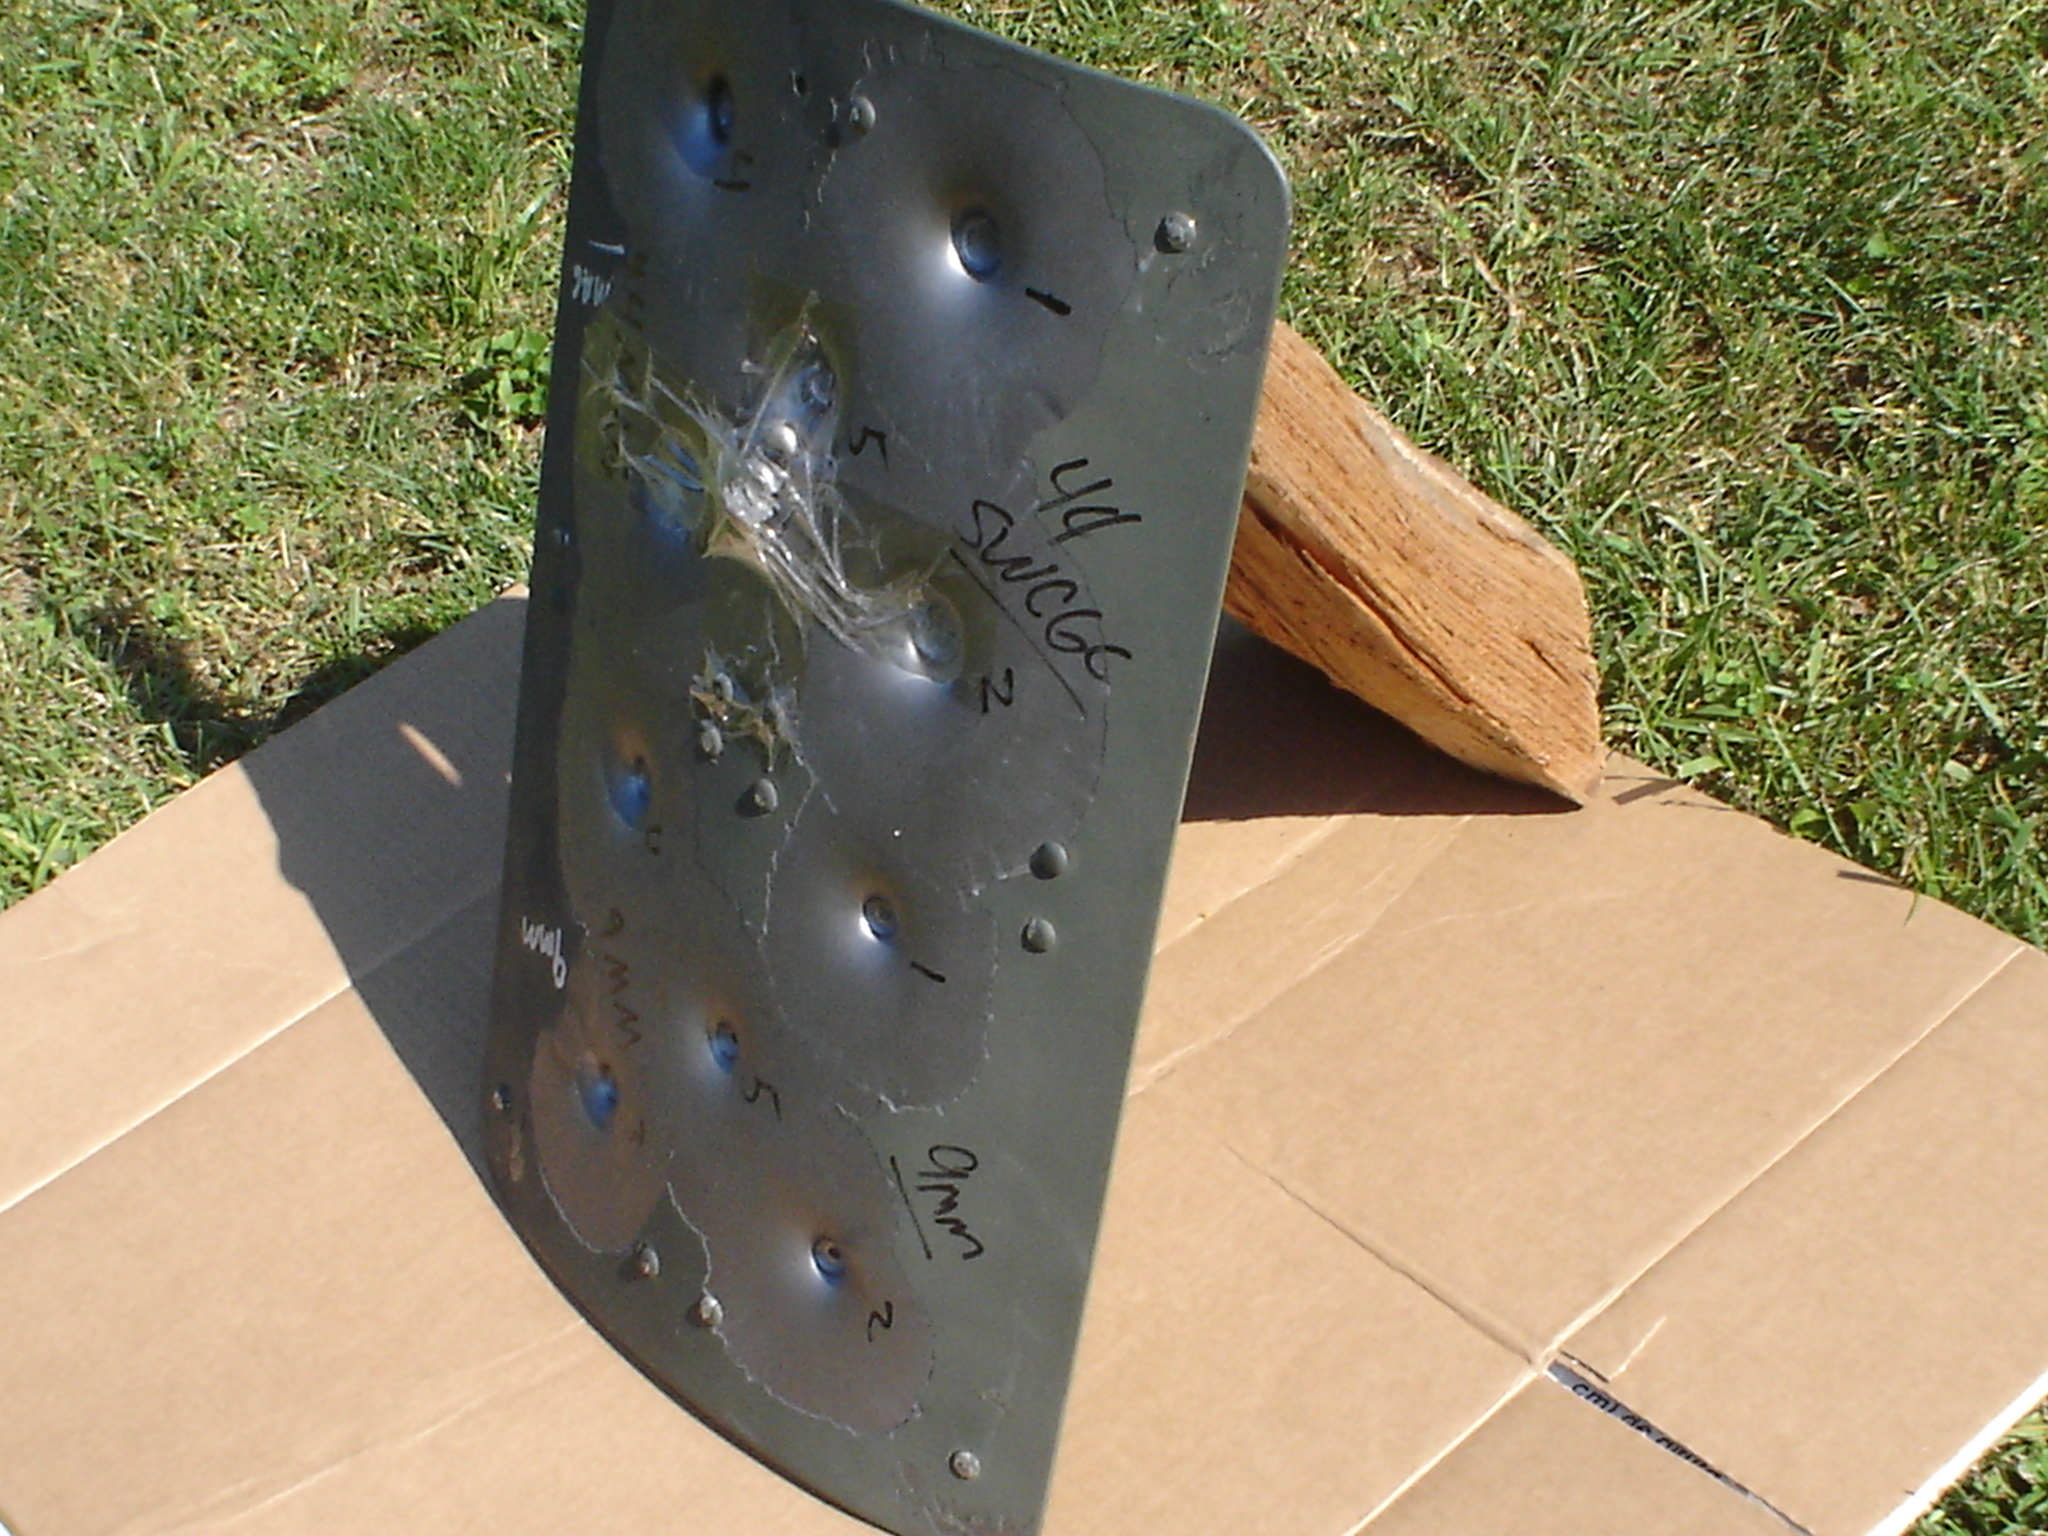 MINI SHIELD%20TEST%20LEVEL%20IIIA%20PASS%20005 <!  :en  >Prototype Mini Battle Shield/Mini Combat Shield Gets Shoot Tested (Pics)<!  :  >